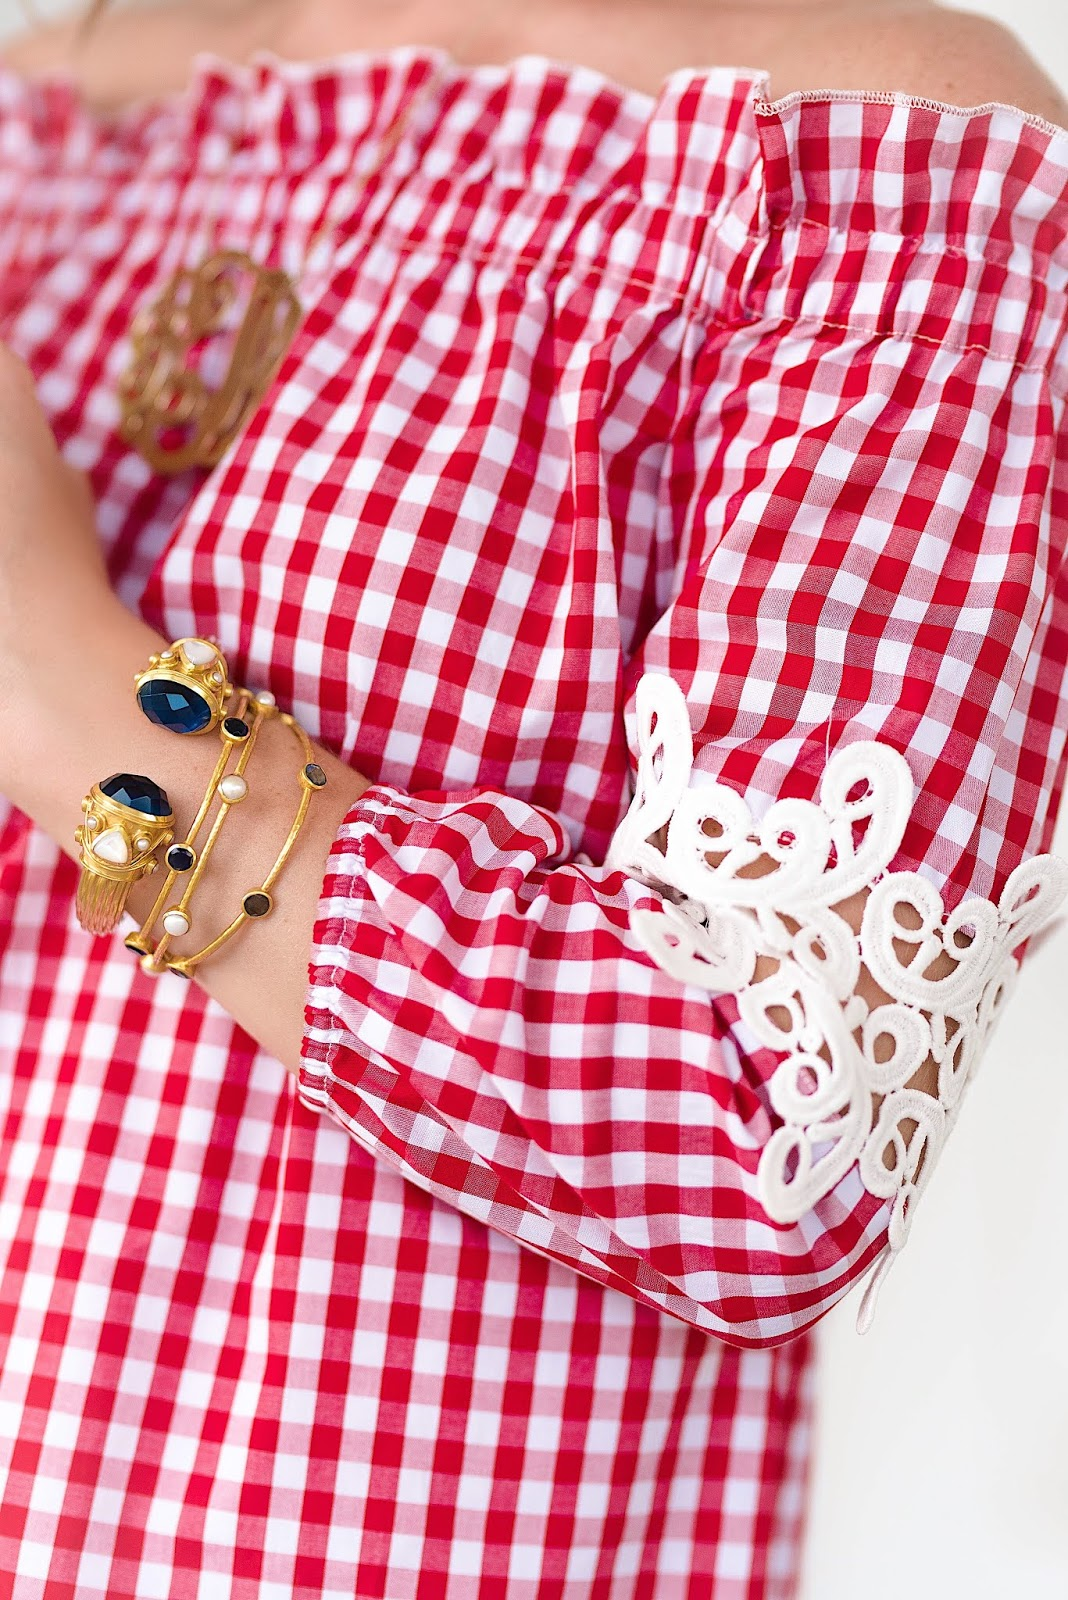 Under $50 Red Gingham Dress + Julie Vos Accessories - Something Delightful Blog